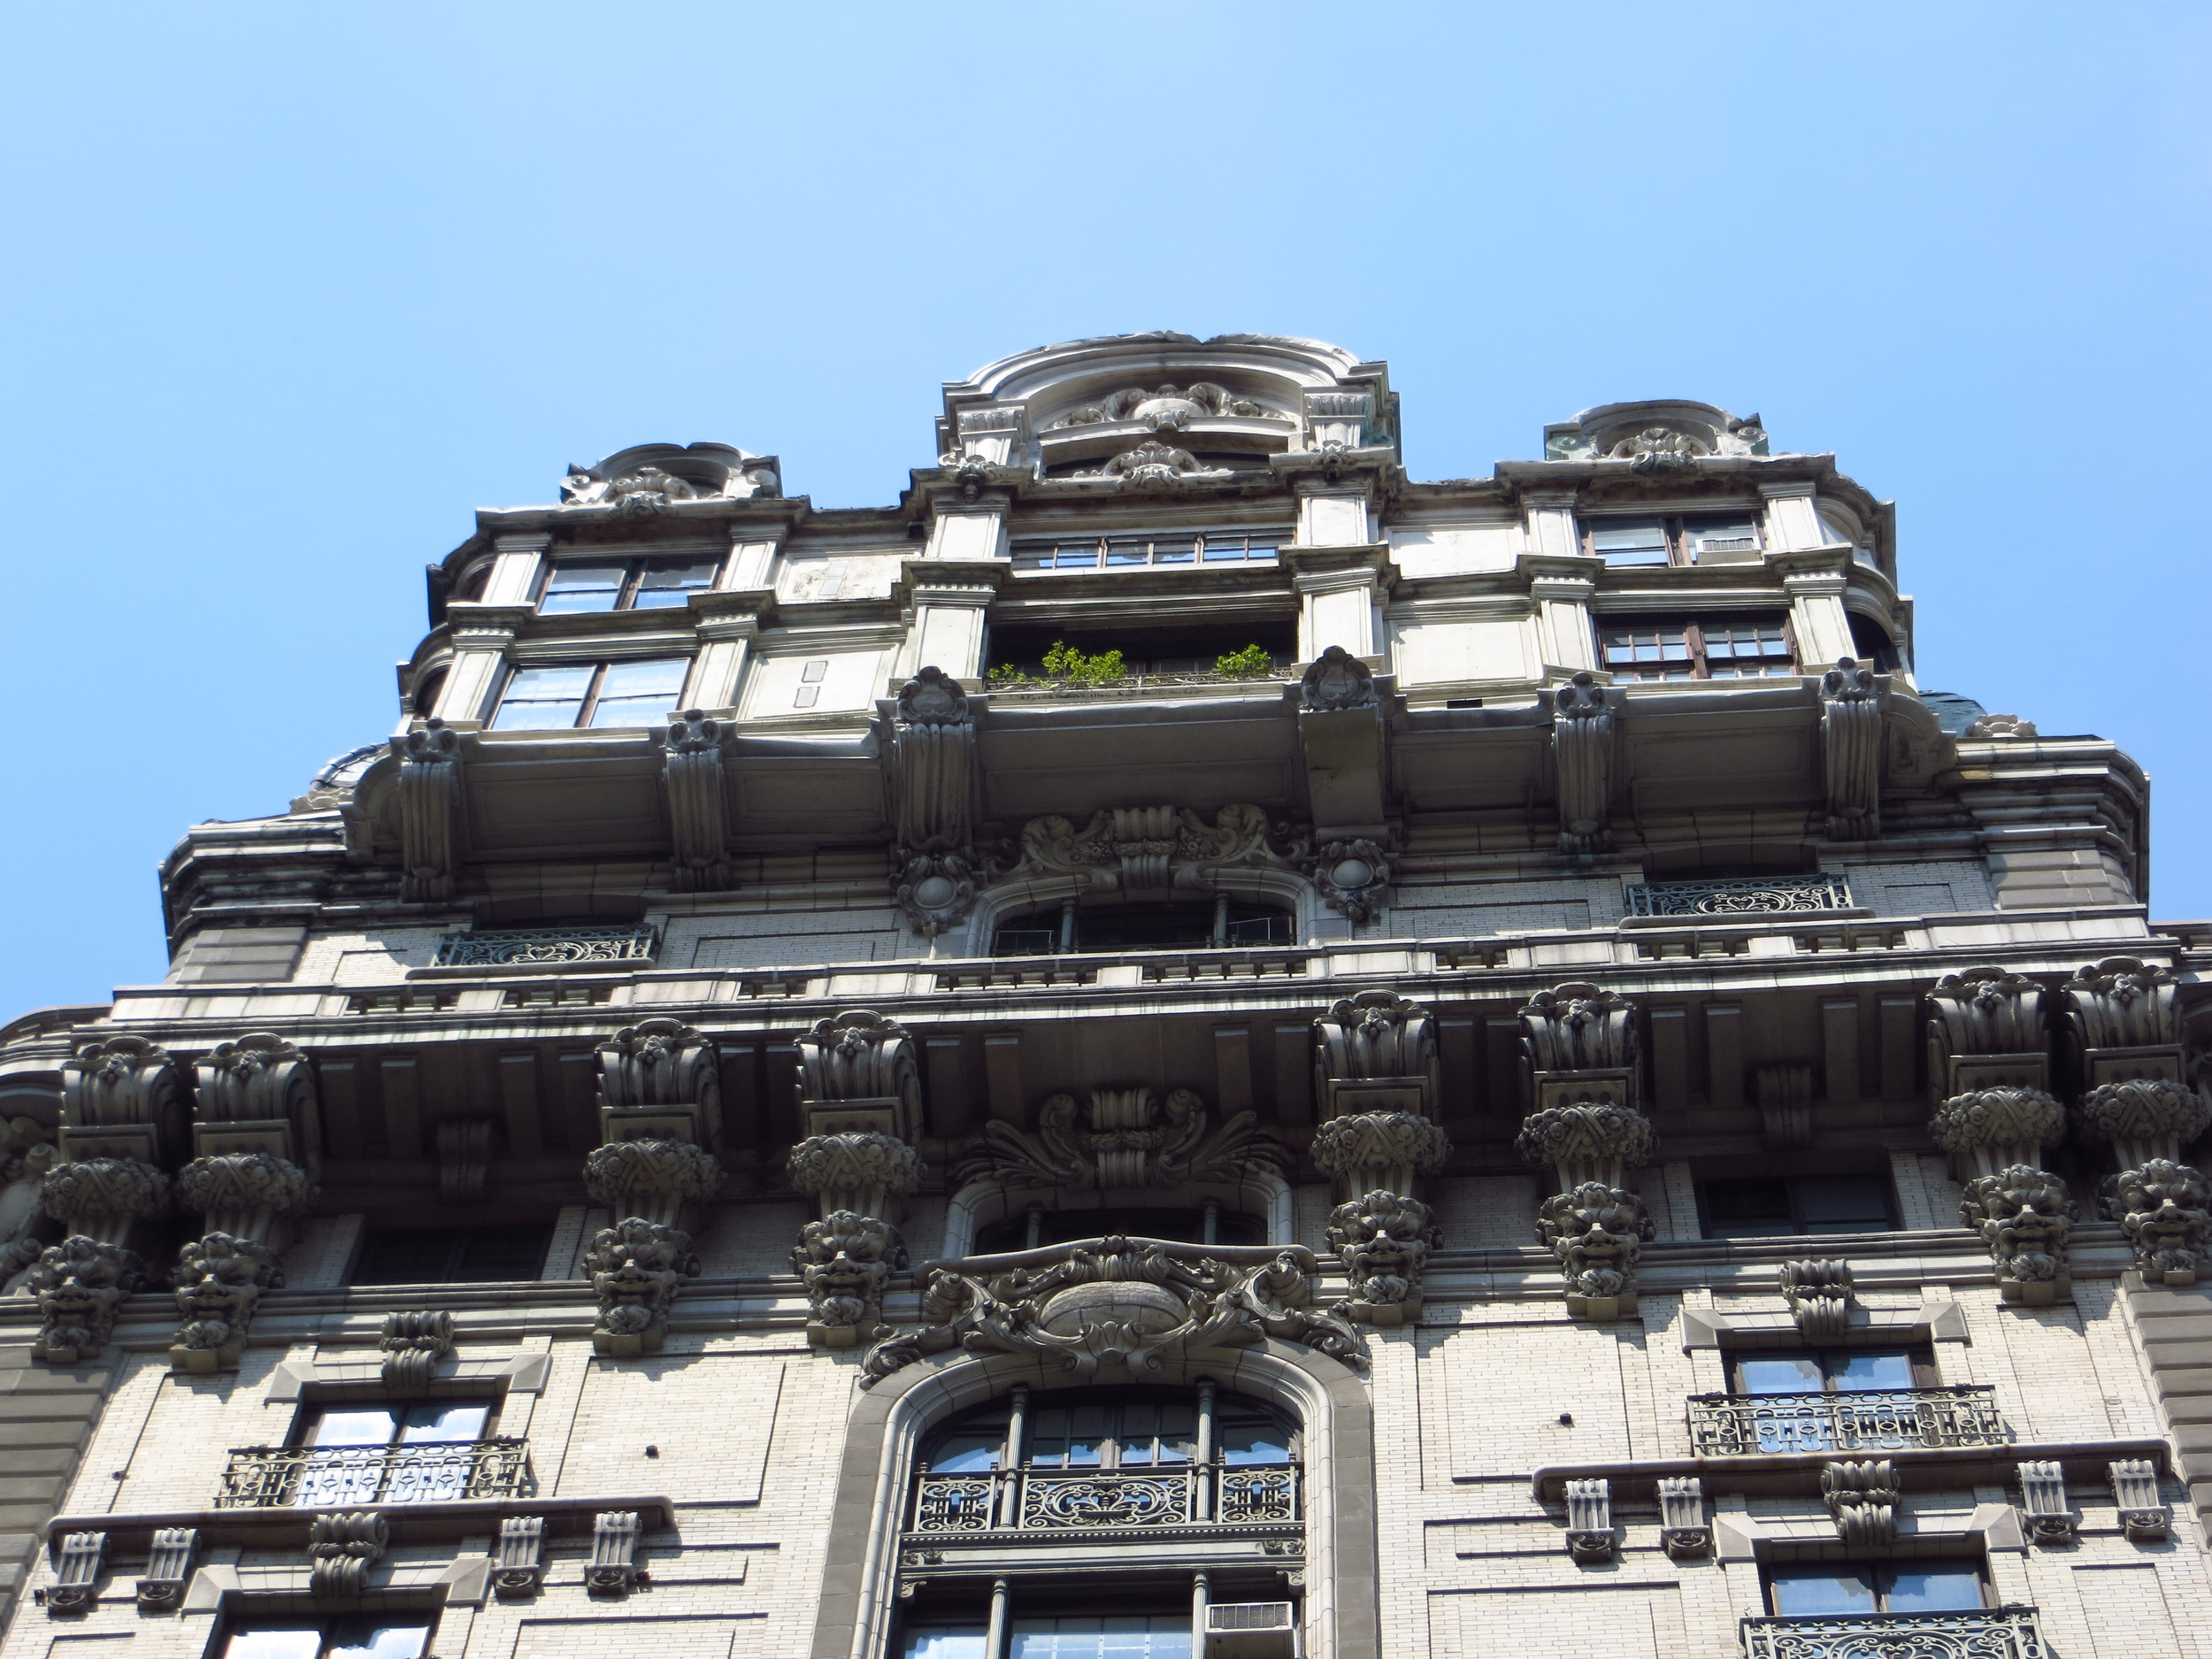 Ansonia again (it's kind of my favorite building)